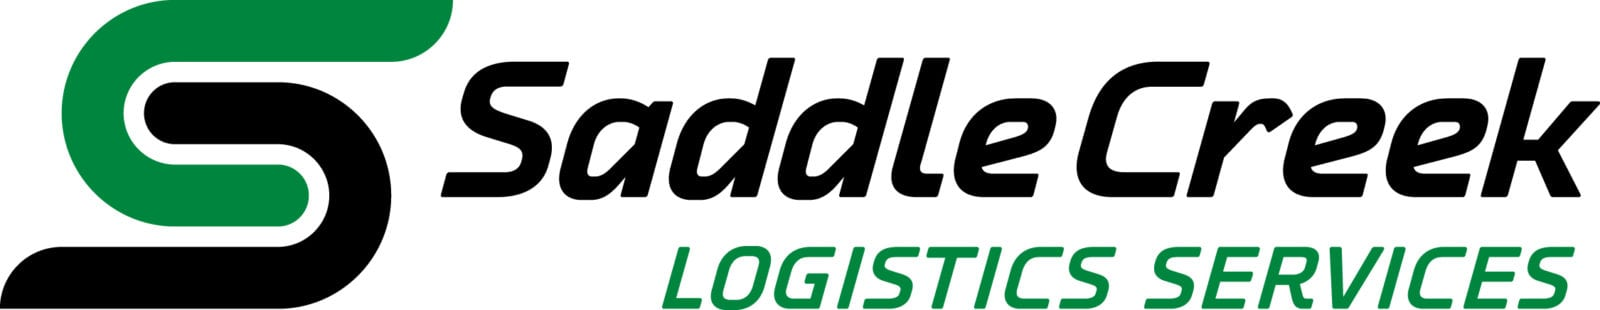 SaddleCreek Logistics Logo